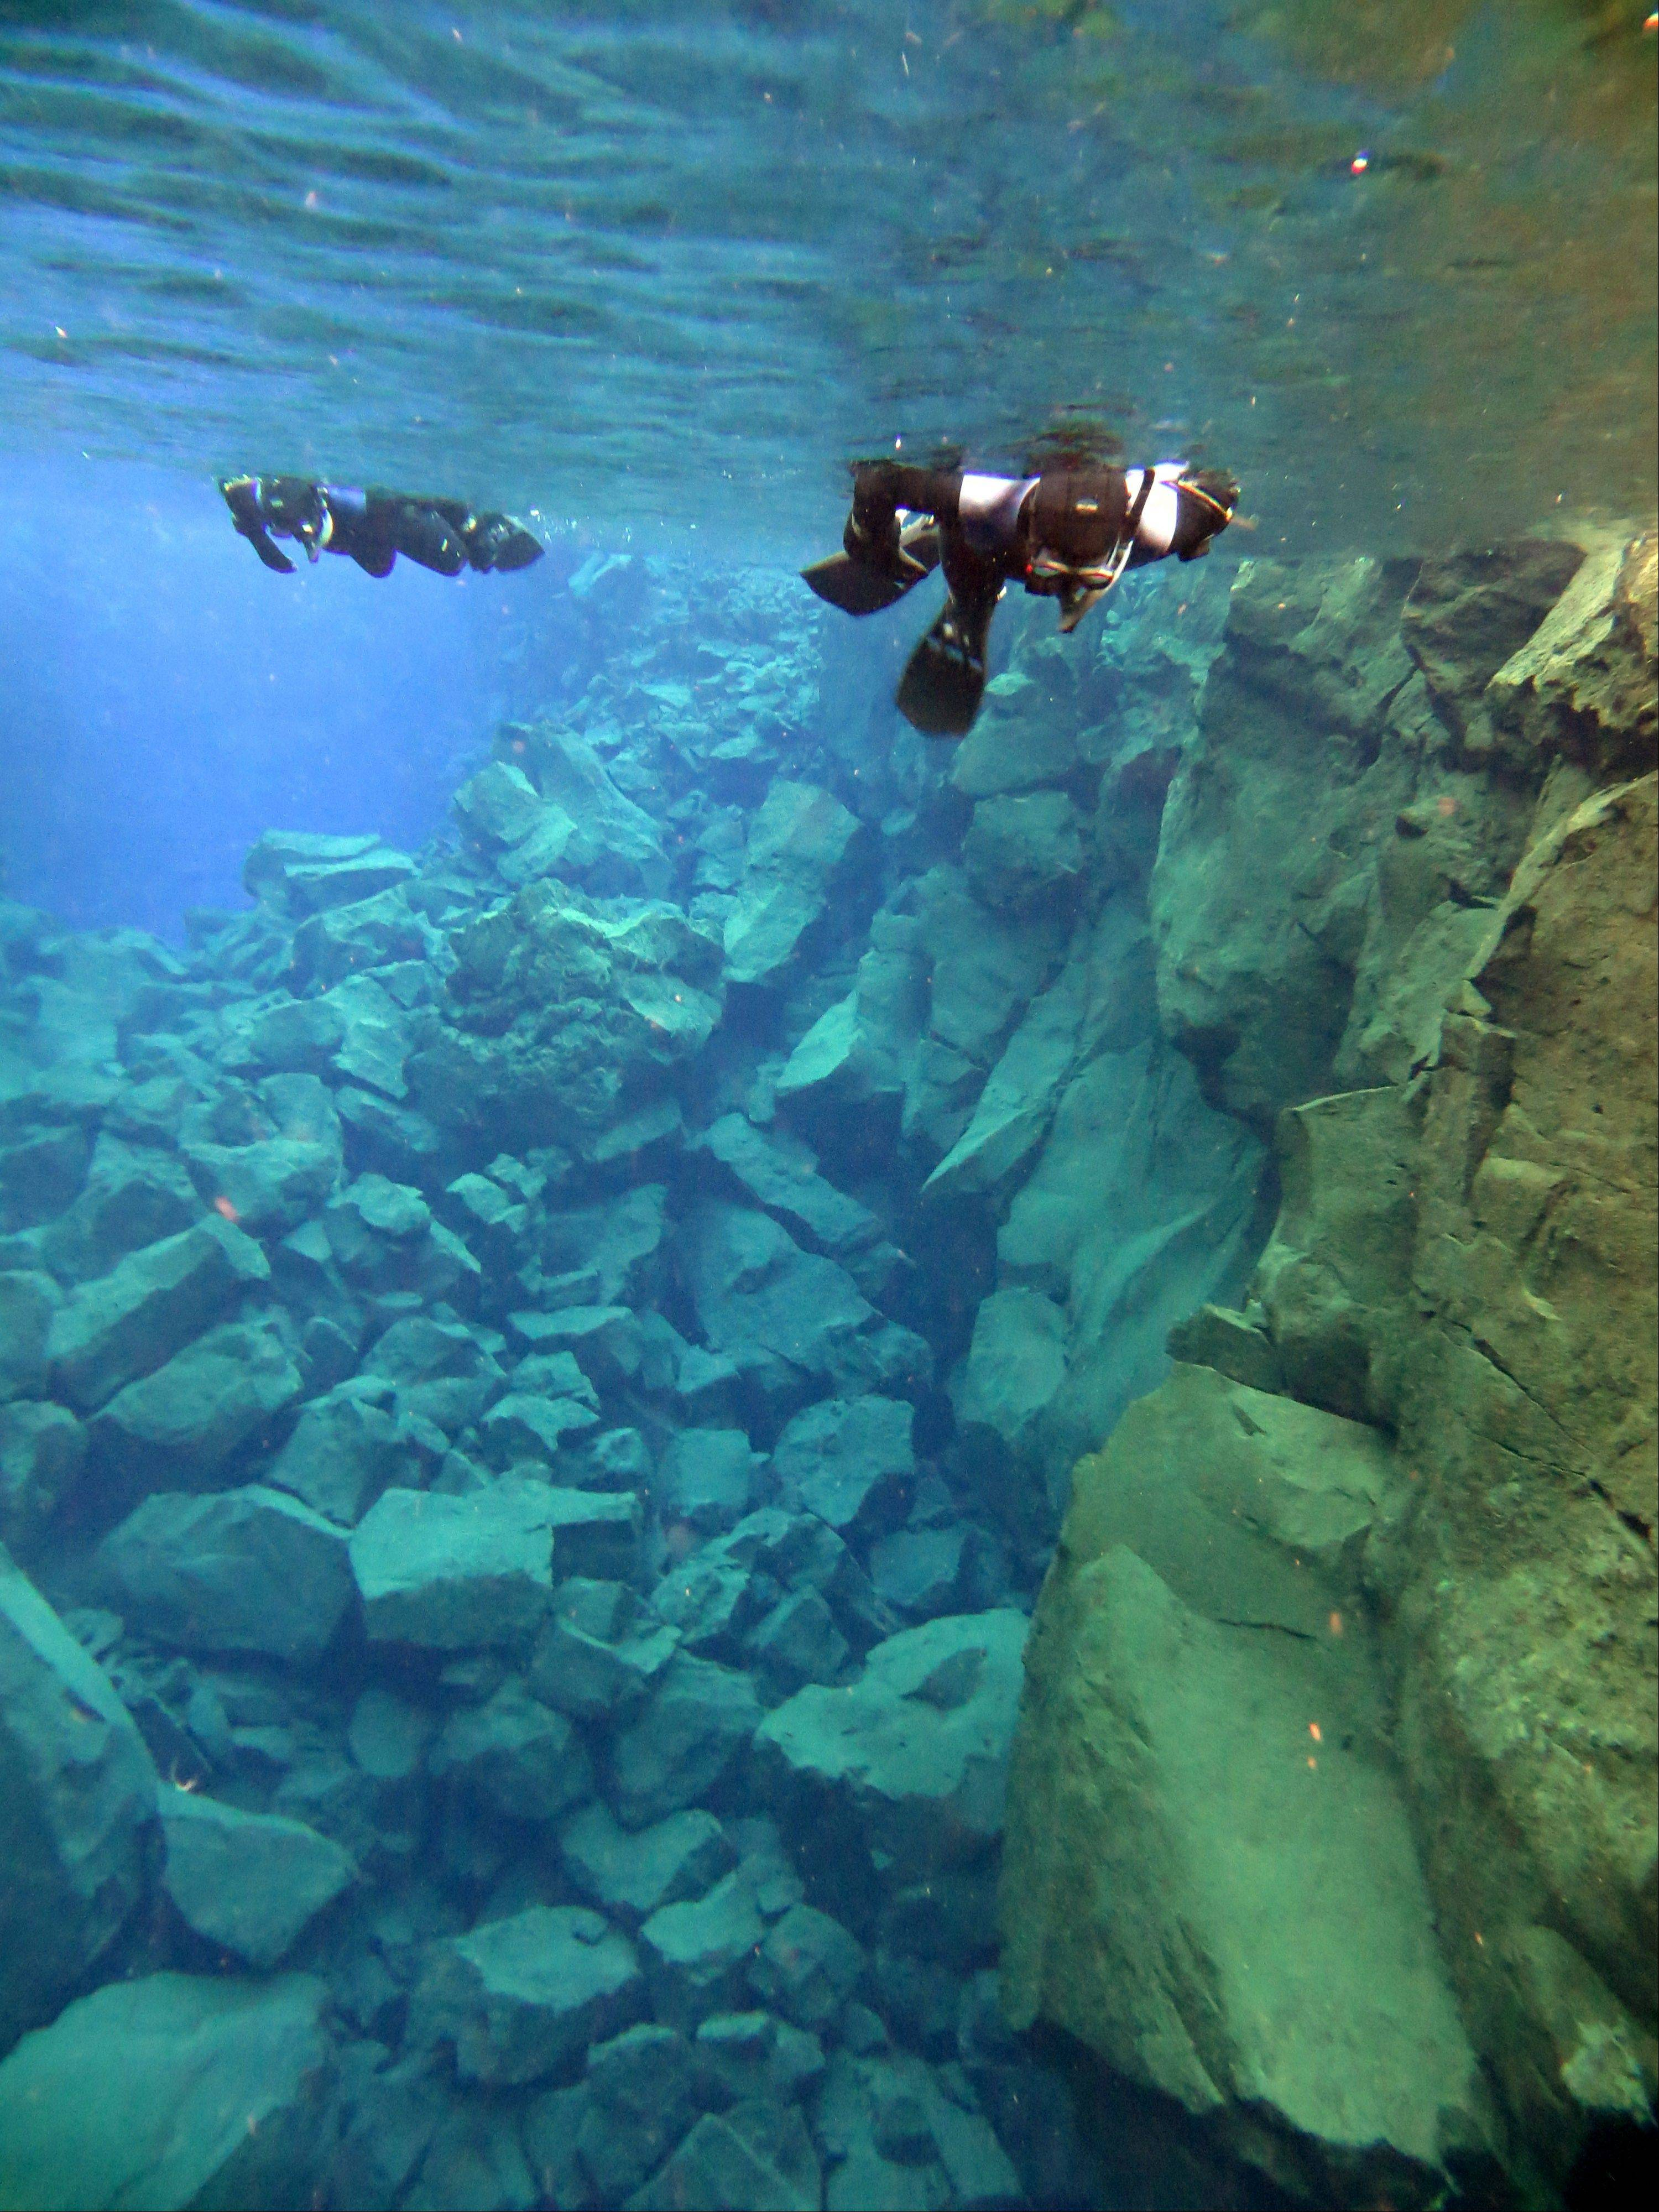 Snorkelers traverse the popular Silfra rift in Iceland. Despite its near-freezing temperatures, Silfra has become a popular site for divers.